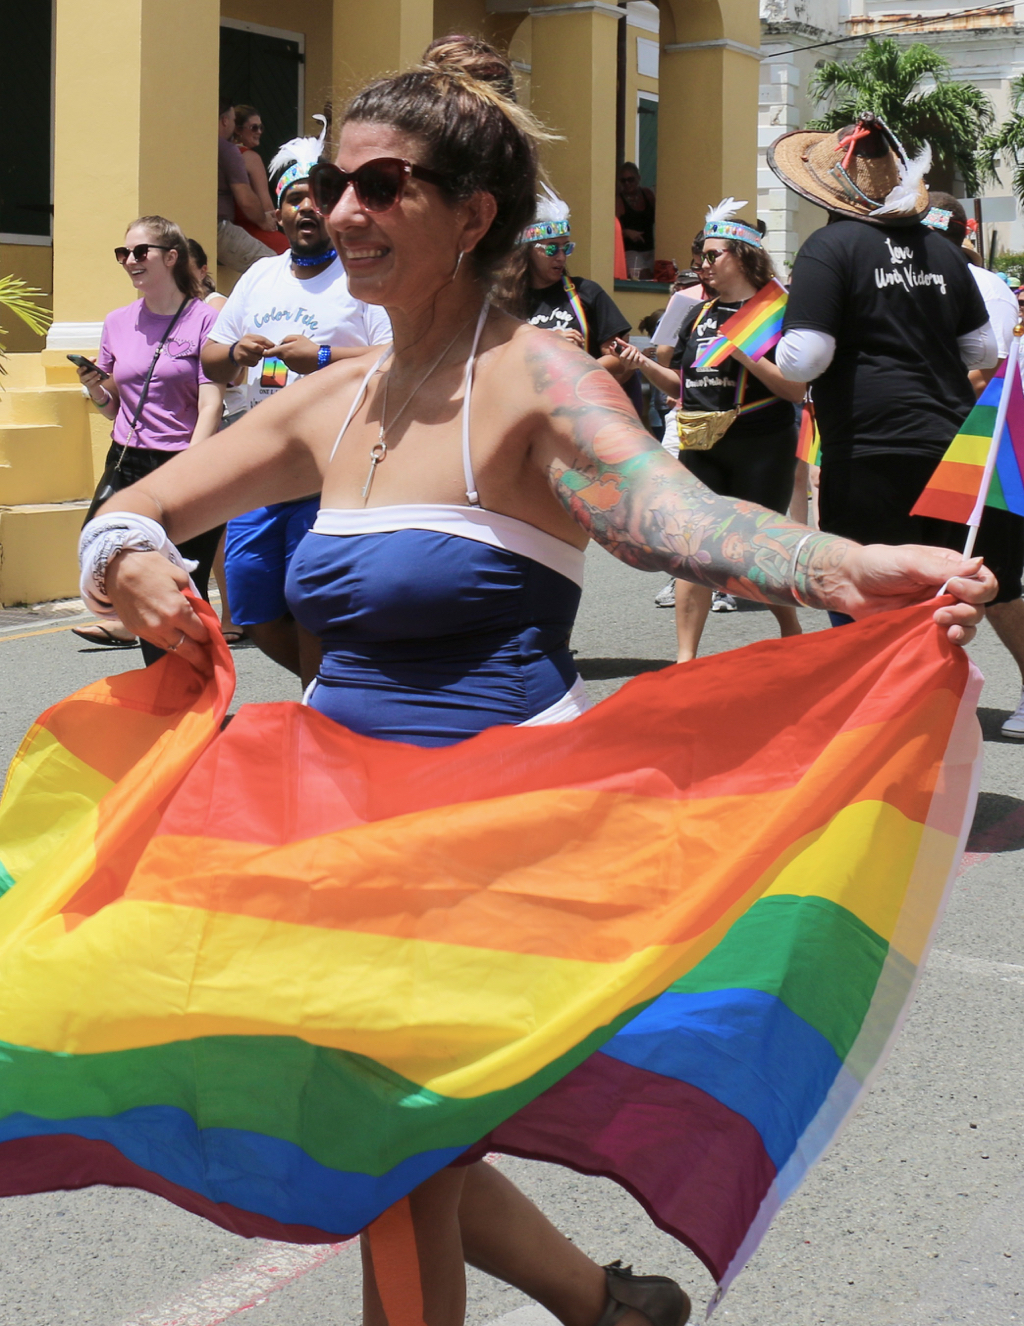 Rainbow flags and banners were in abundance during the parade. (Linda Morland photo)